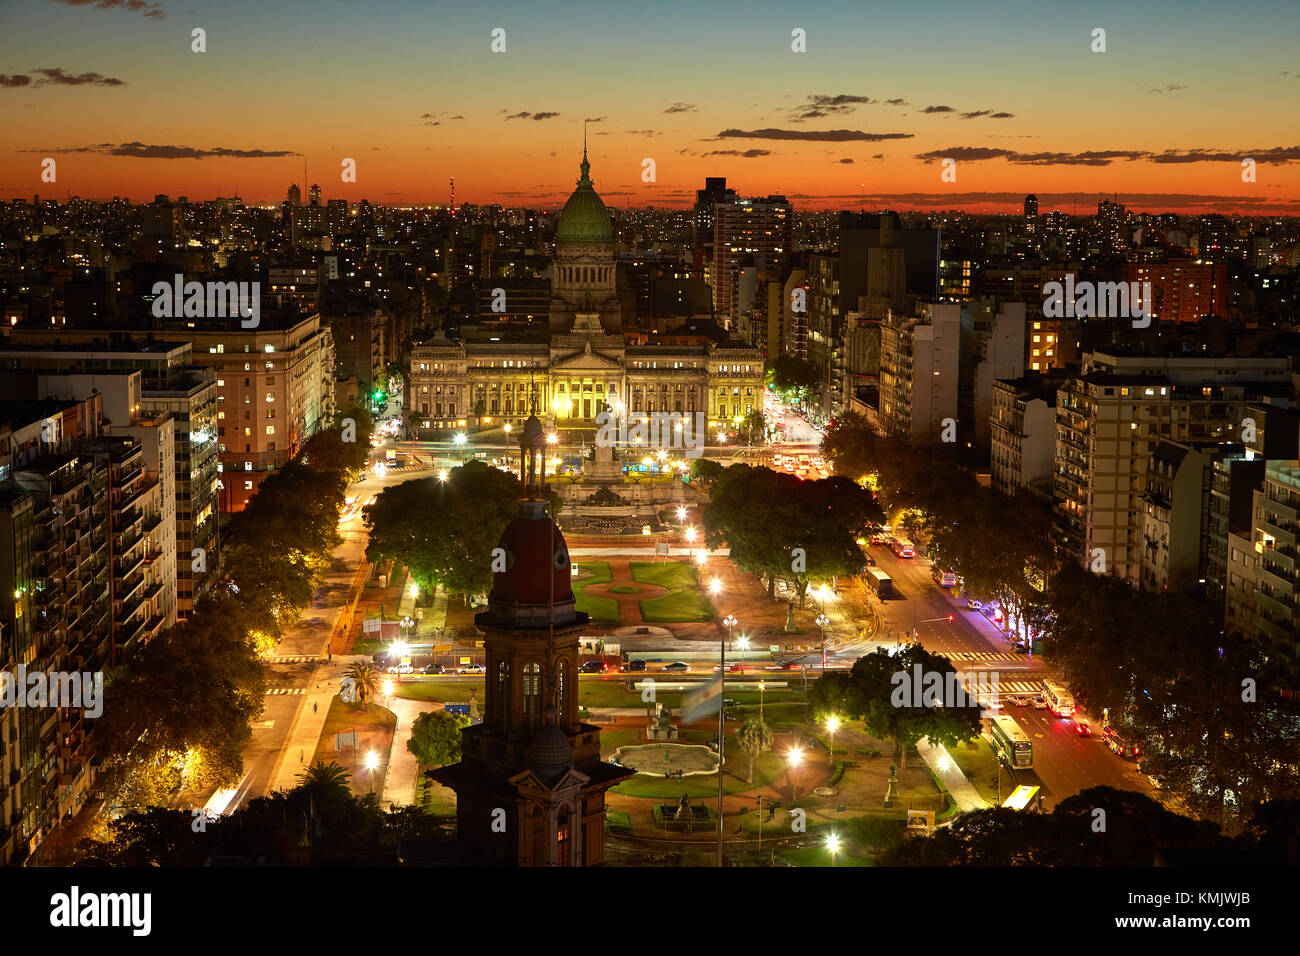 Sunset over Plaza del Congreso, and Palacio del Congreso, from Palacio Barolo, Buenos Aires, Argentina, South America - Stock Image